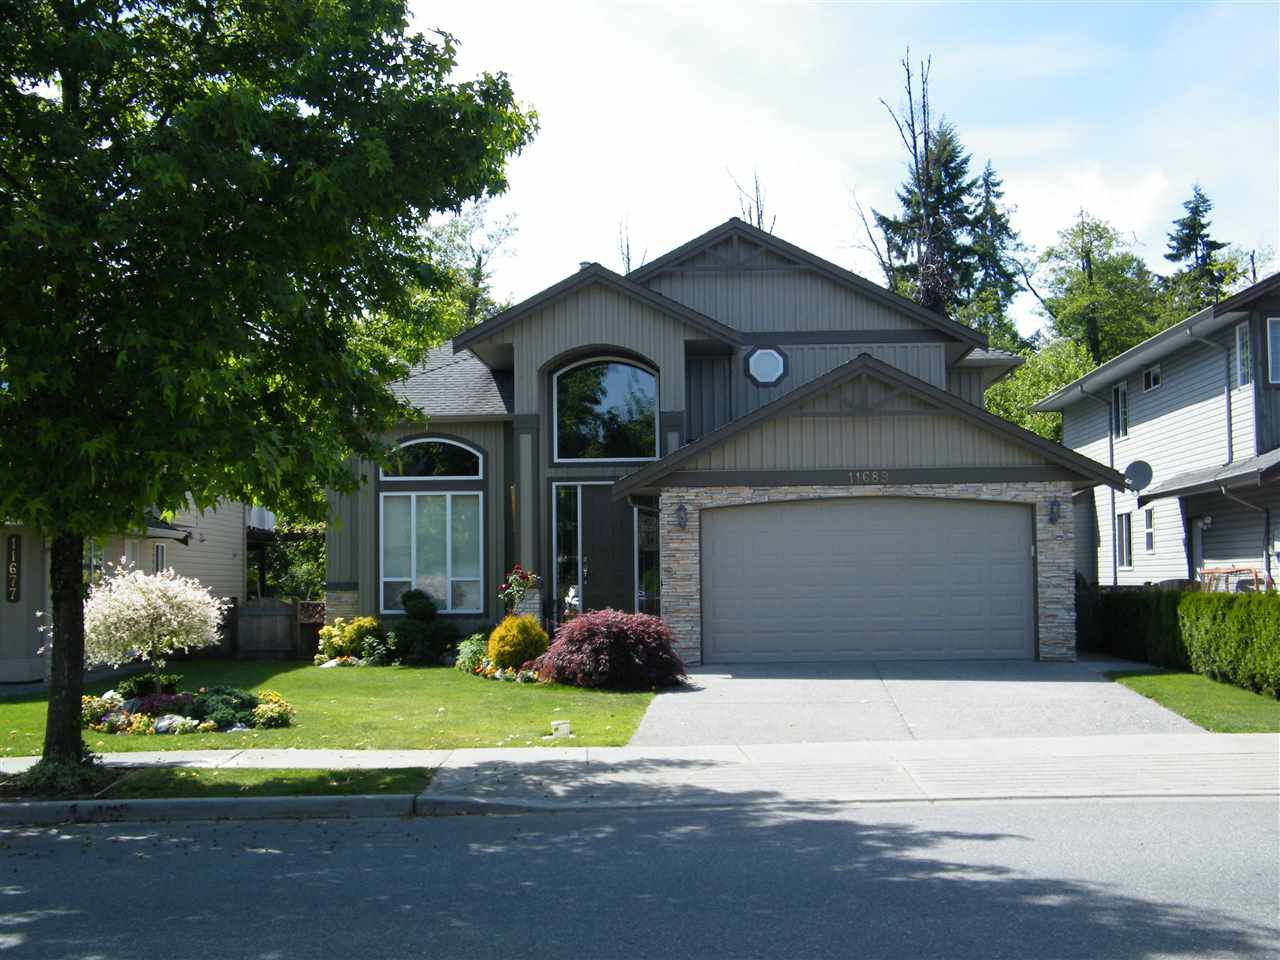 Main Photo: 11689 CREEKSIDE Street in Maple Ridge: Cottonwood MR House for sale : MLS®# R2000625